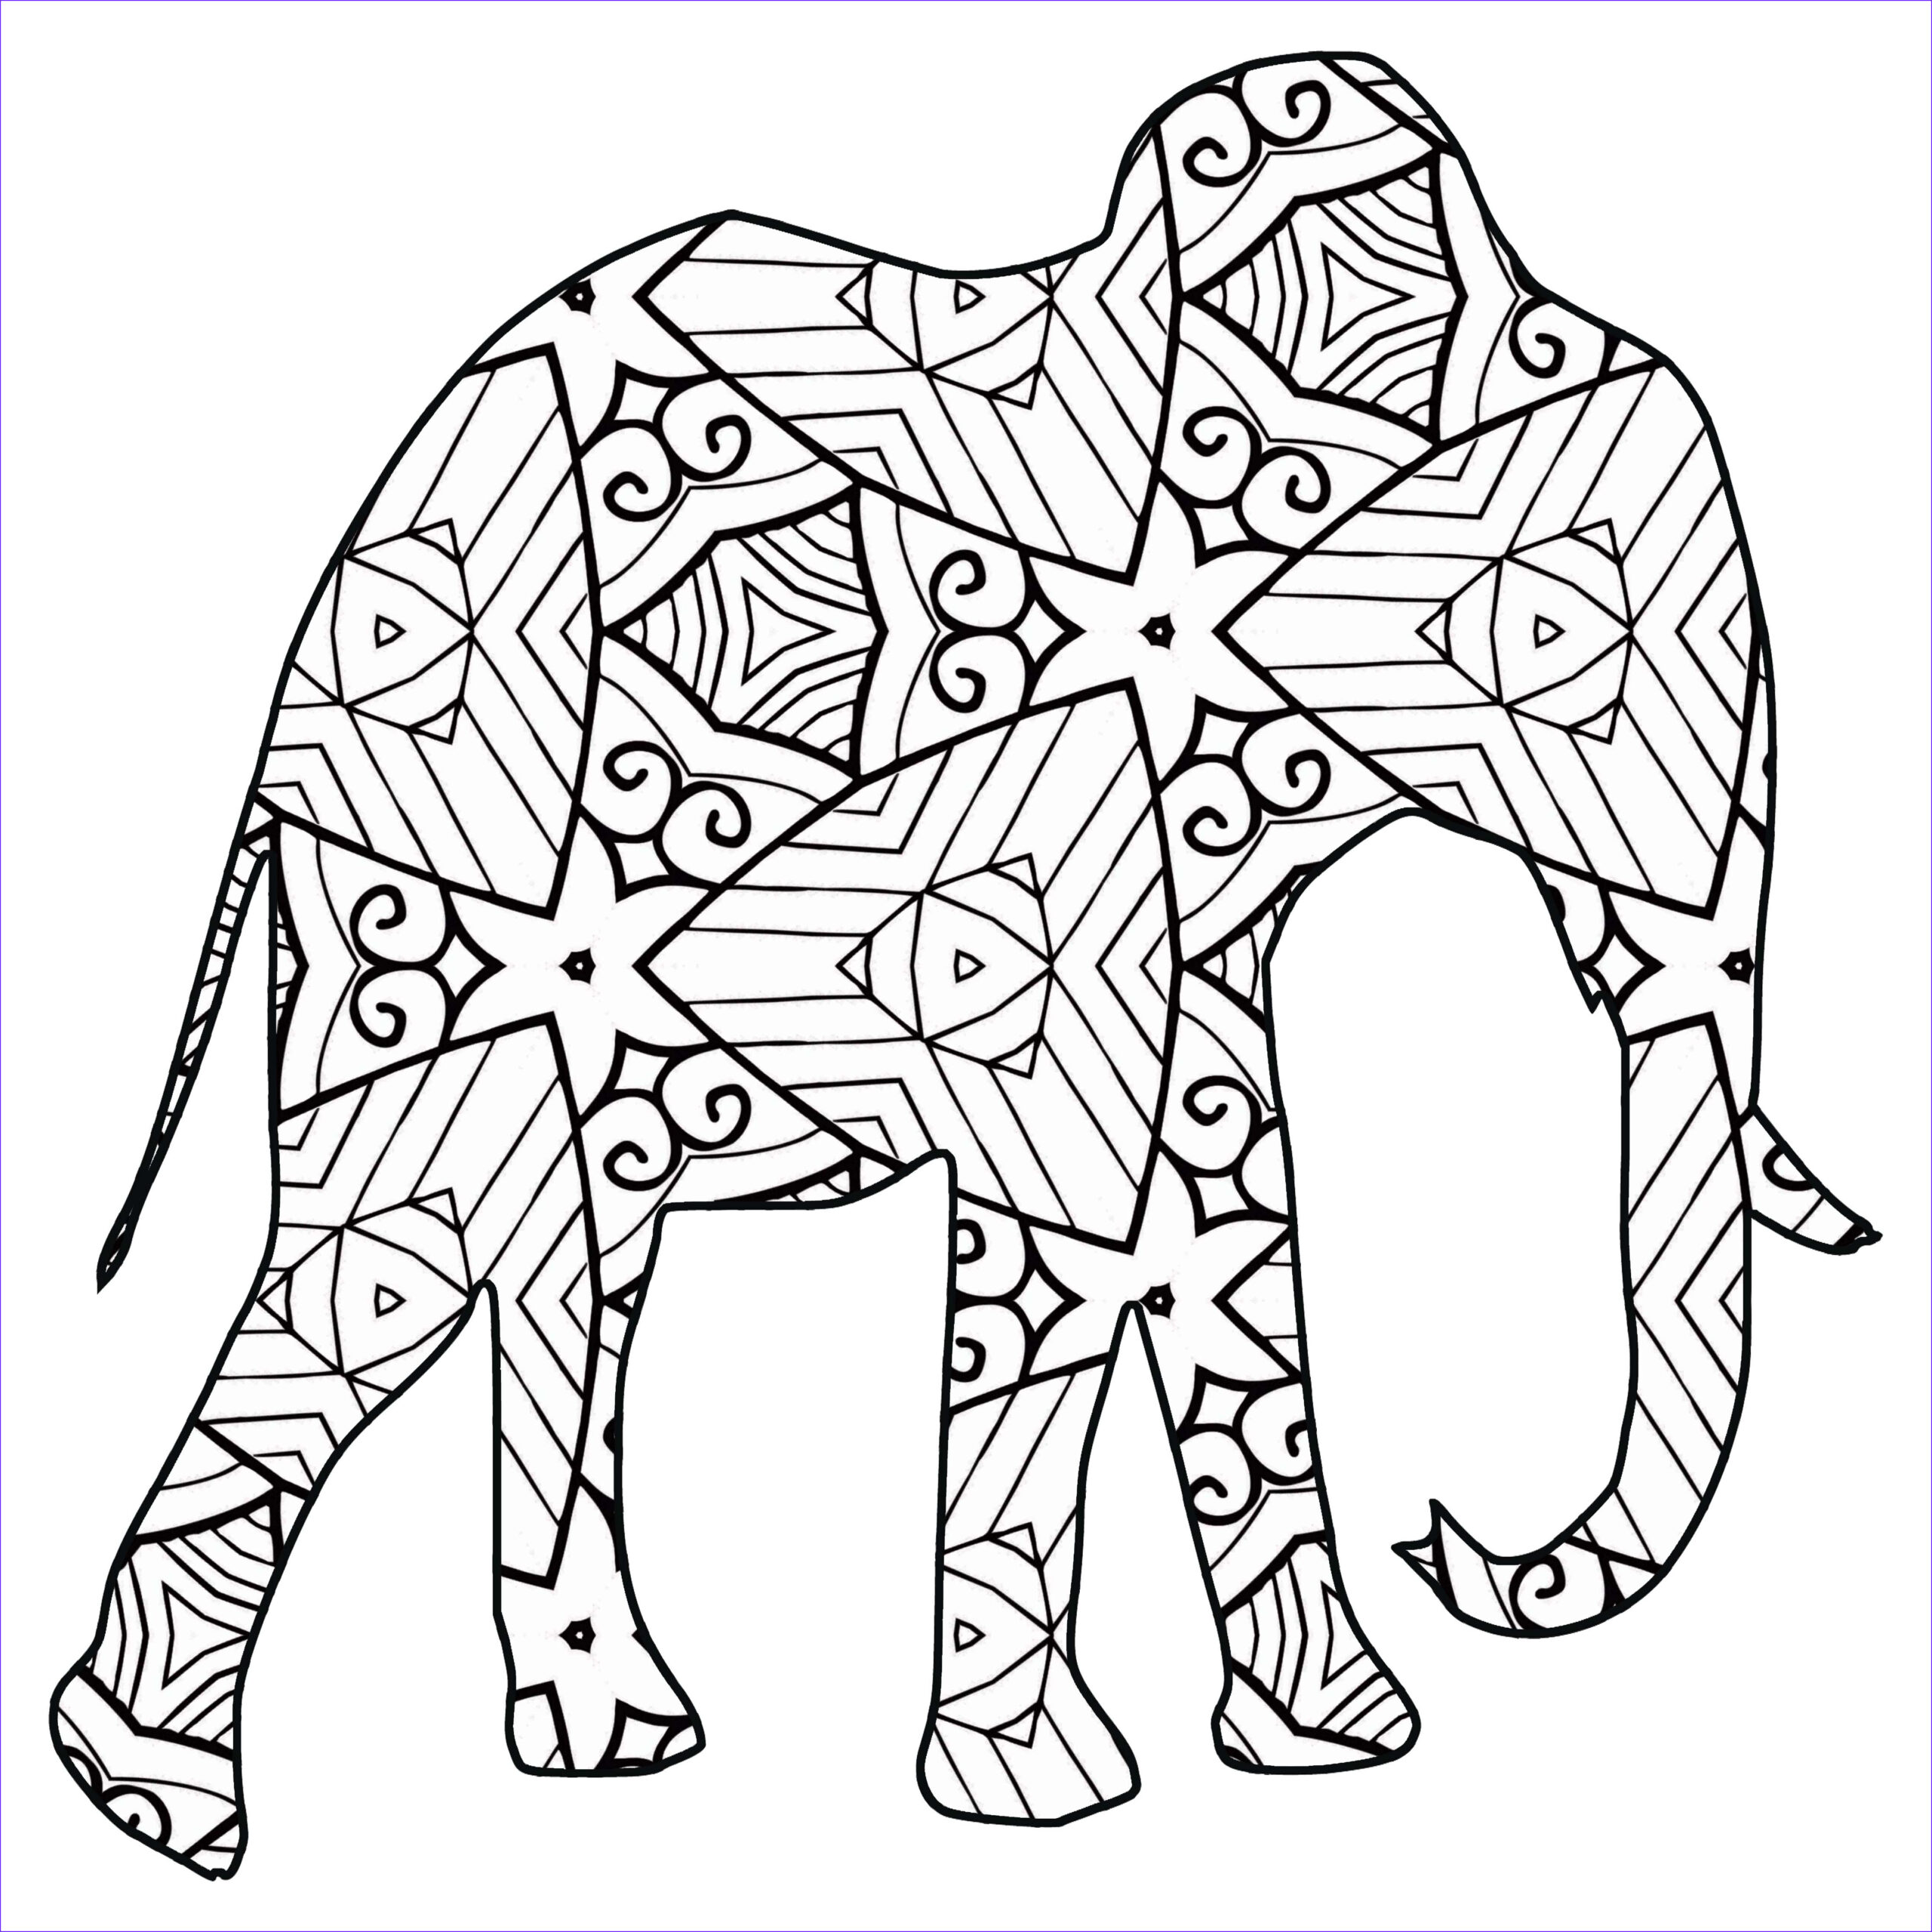 Mammal Coloring Pages Luxury Photos 30 Free Printable Geometric Animal Coloring Pages